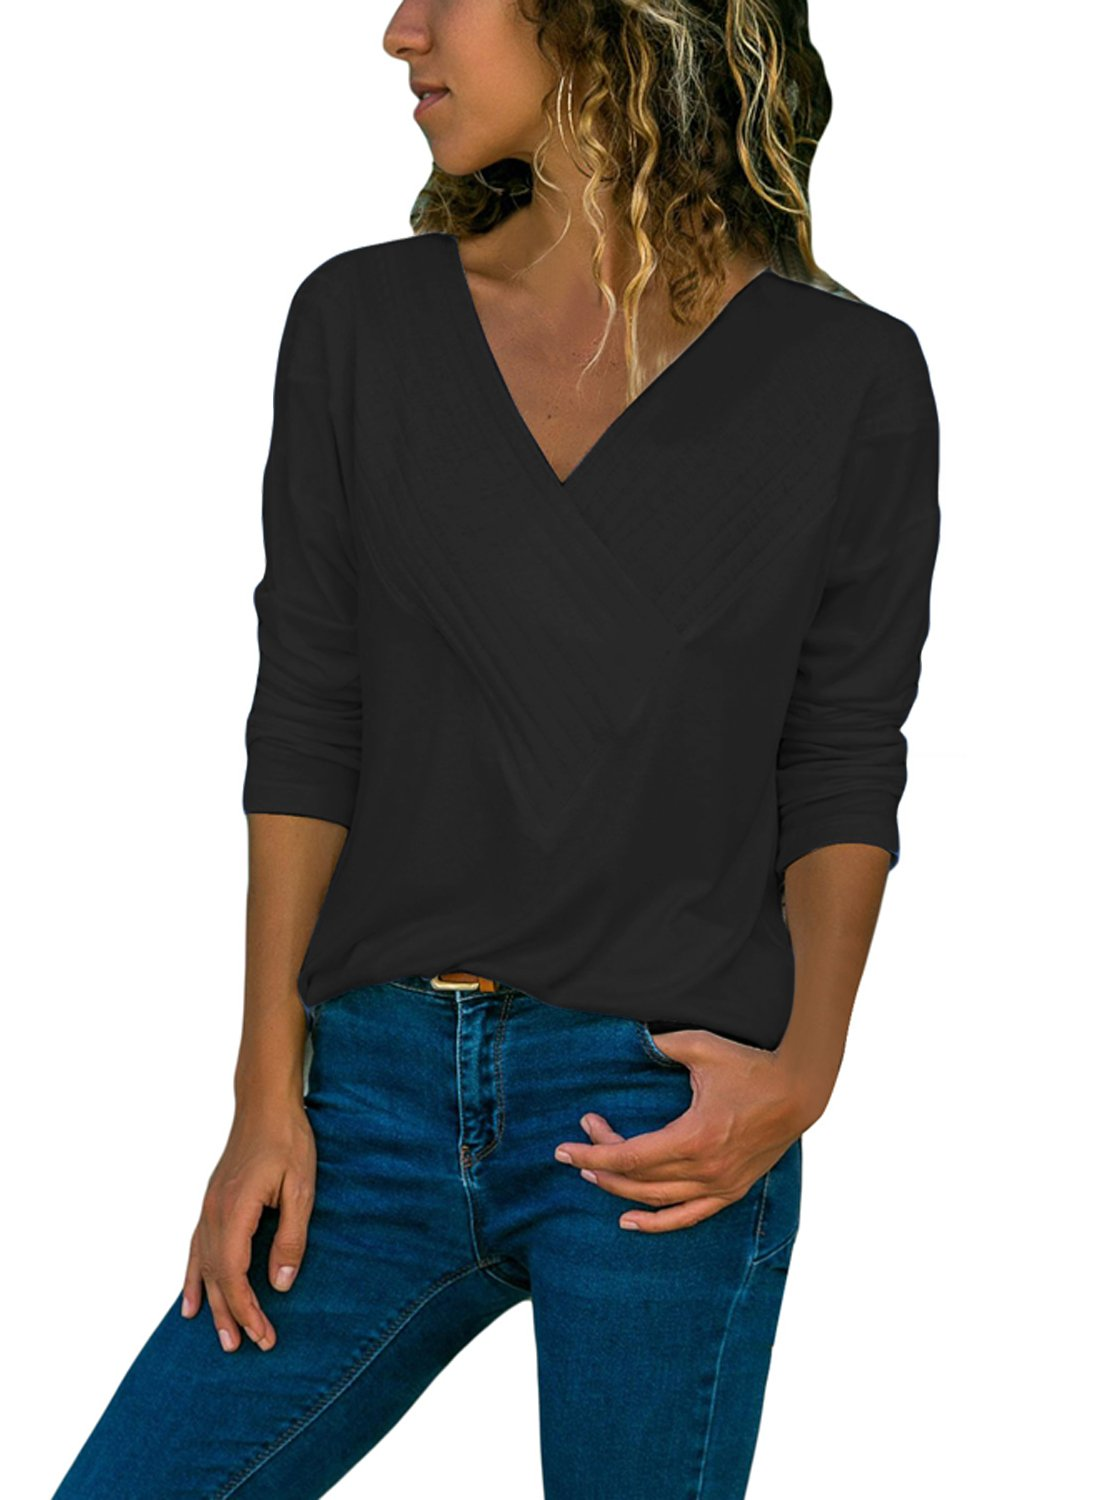 BLENCOT Women's Fall Long Sleeve Cross Wrap Front V Neck Loose Black Solid Basic T-Shirt Casual Blouses Tops Large